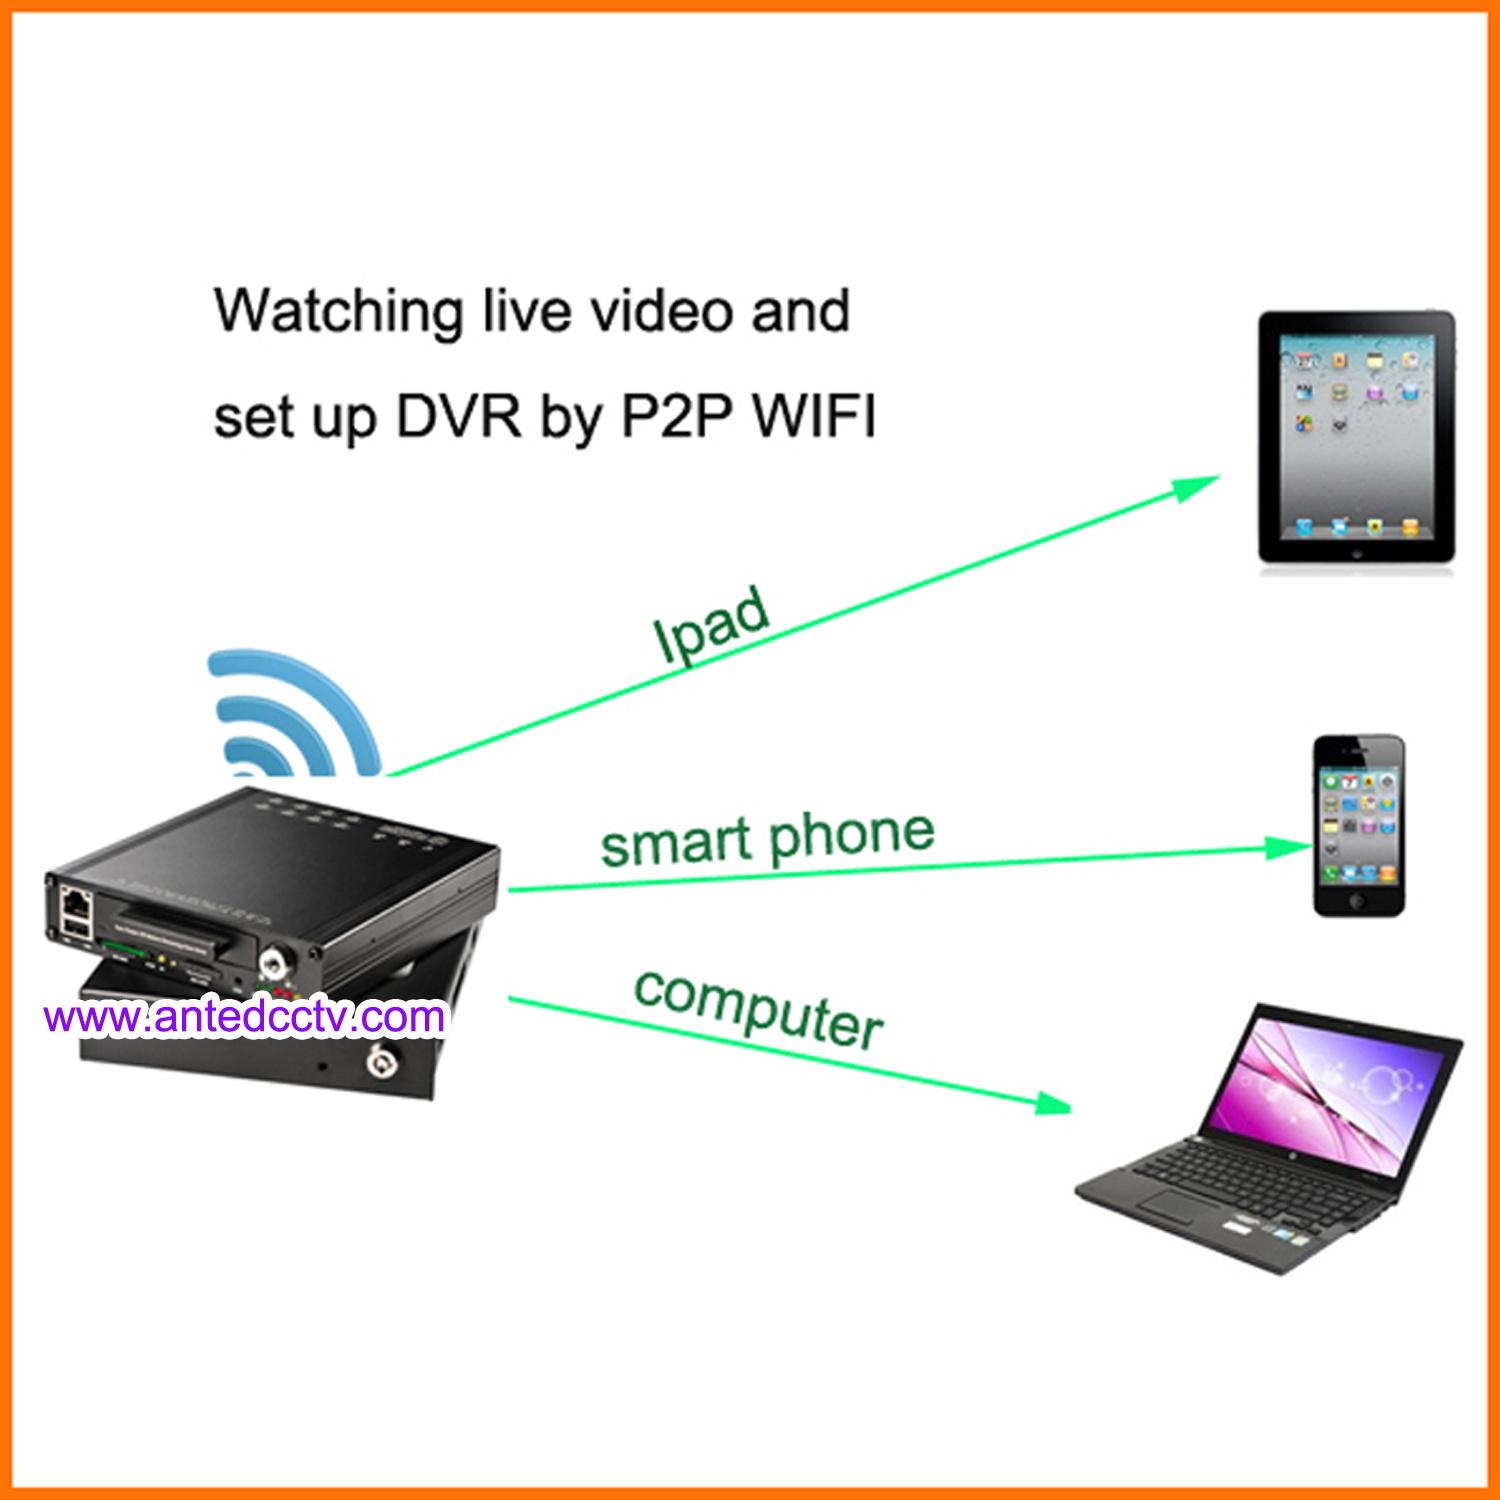 3G/4G GPS WiFi Mdvr for Vehicle Truck Bus Car Fleets CCTV Surveillance System